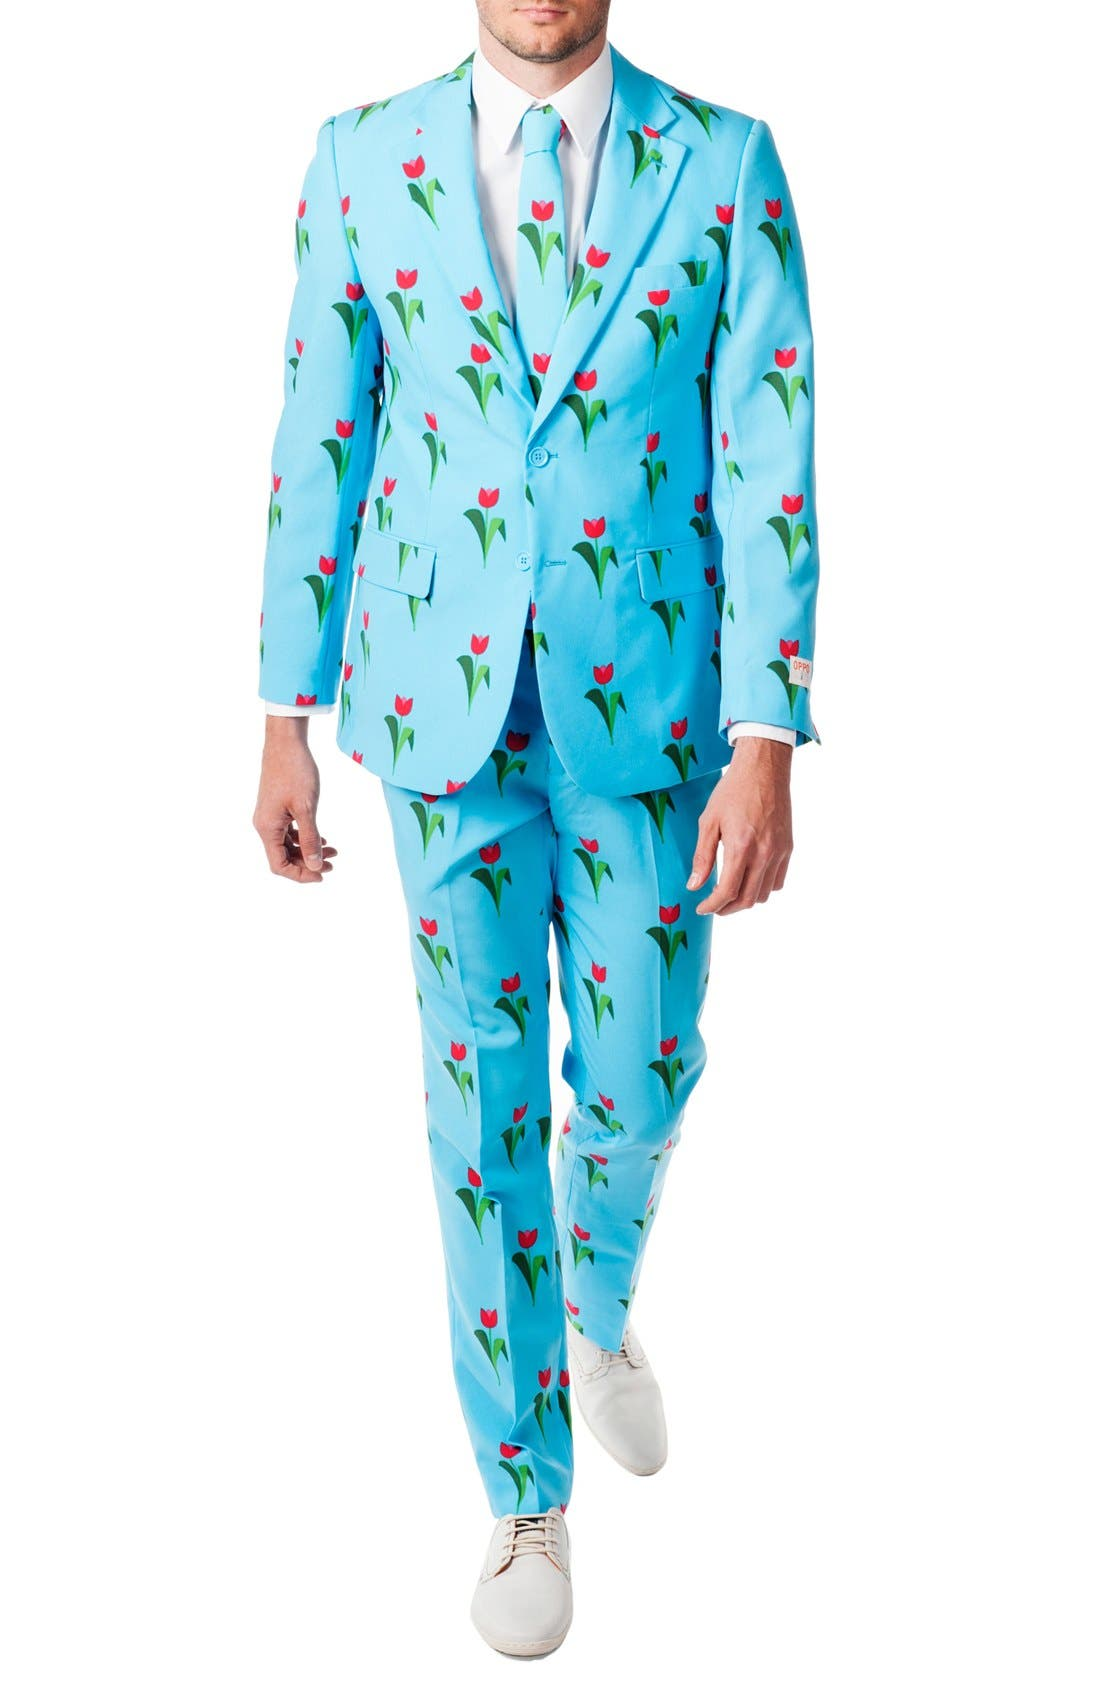 'Tulips from Amsterdam' Trim Fit Two-Piece Suit with Tie,                         Main,                         color, Blue